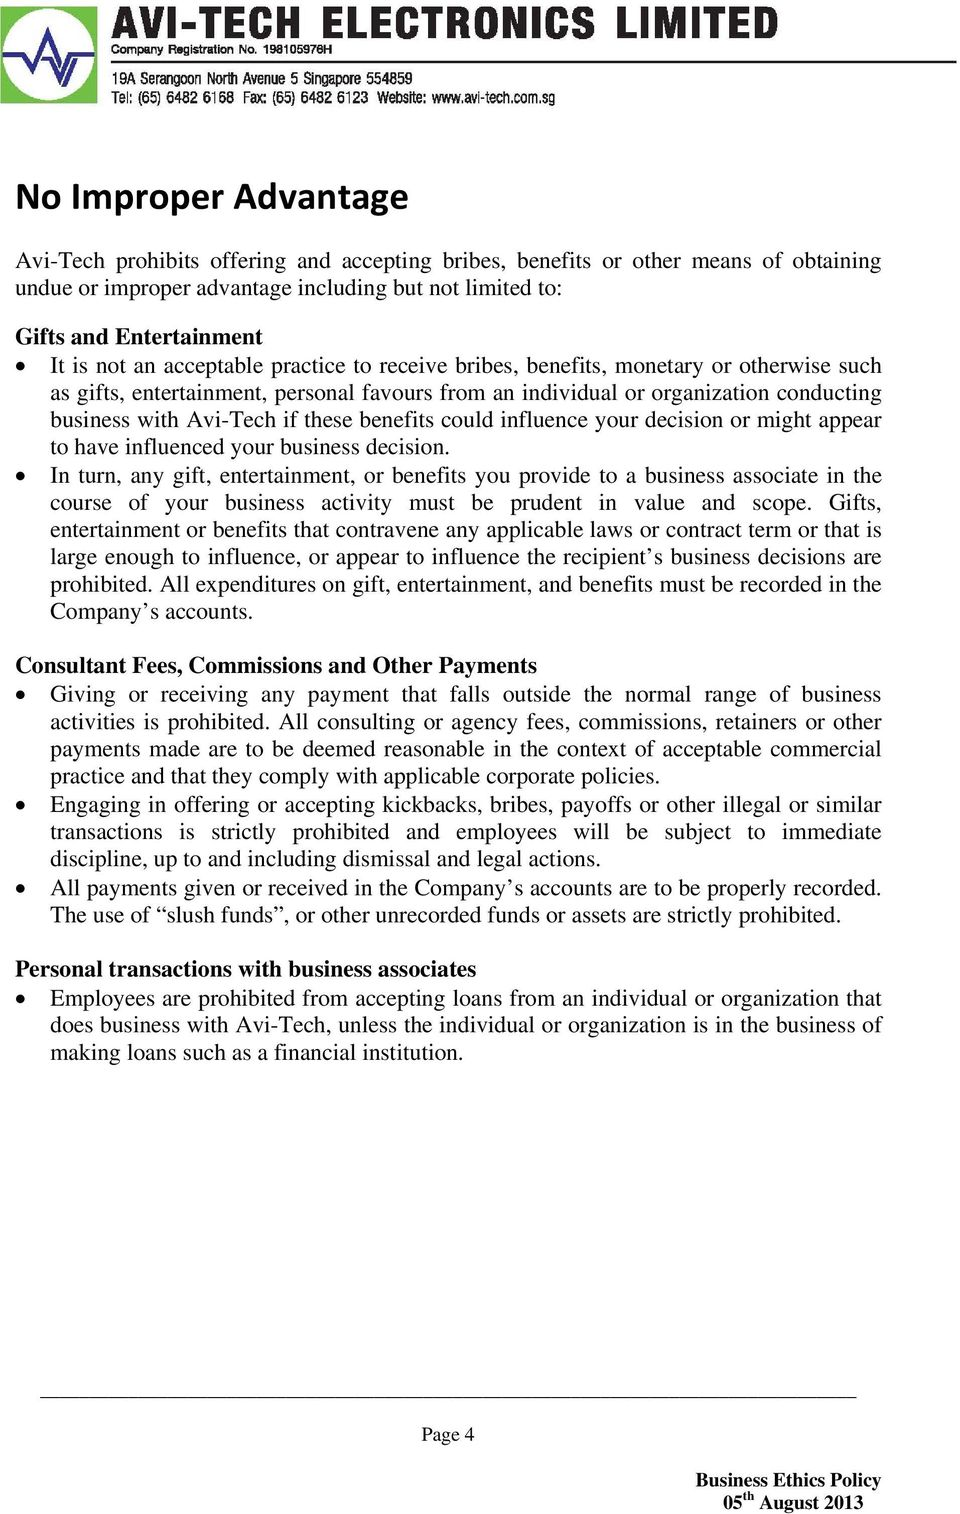 scope of business ethics